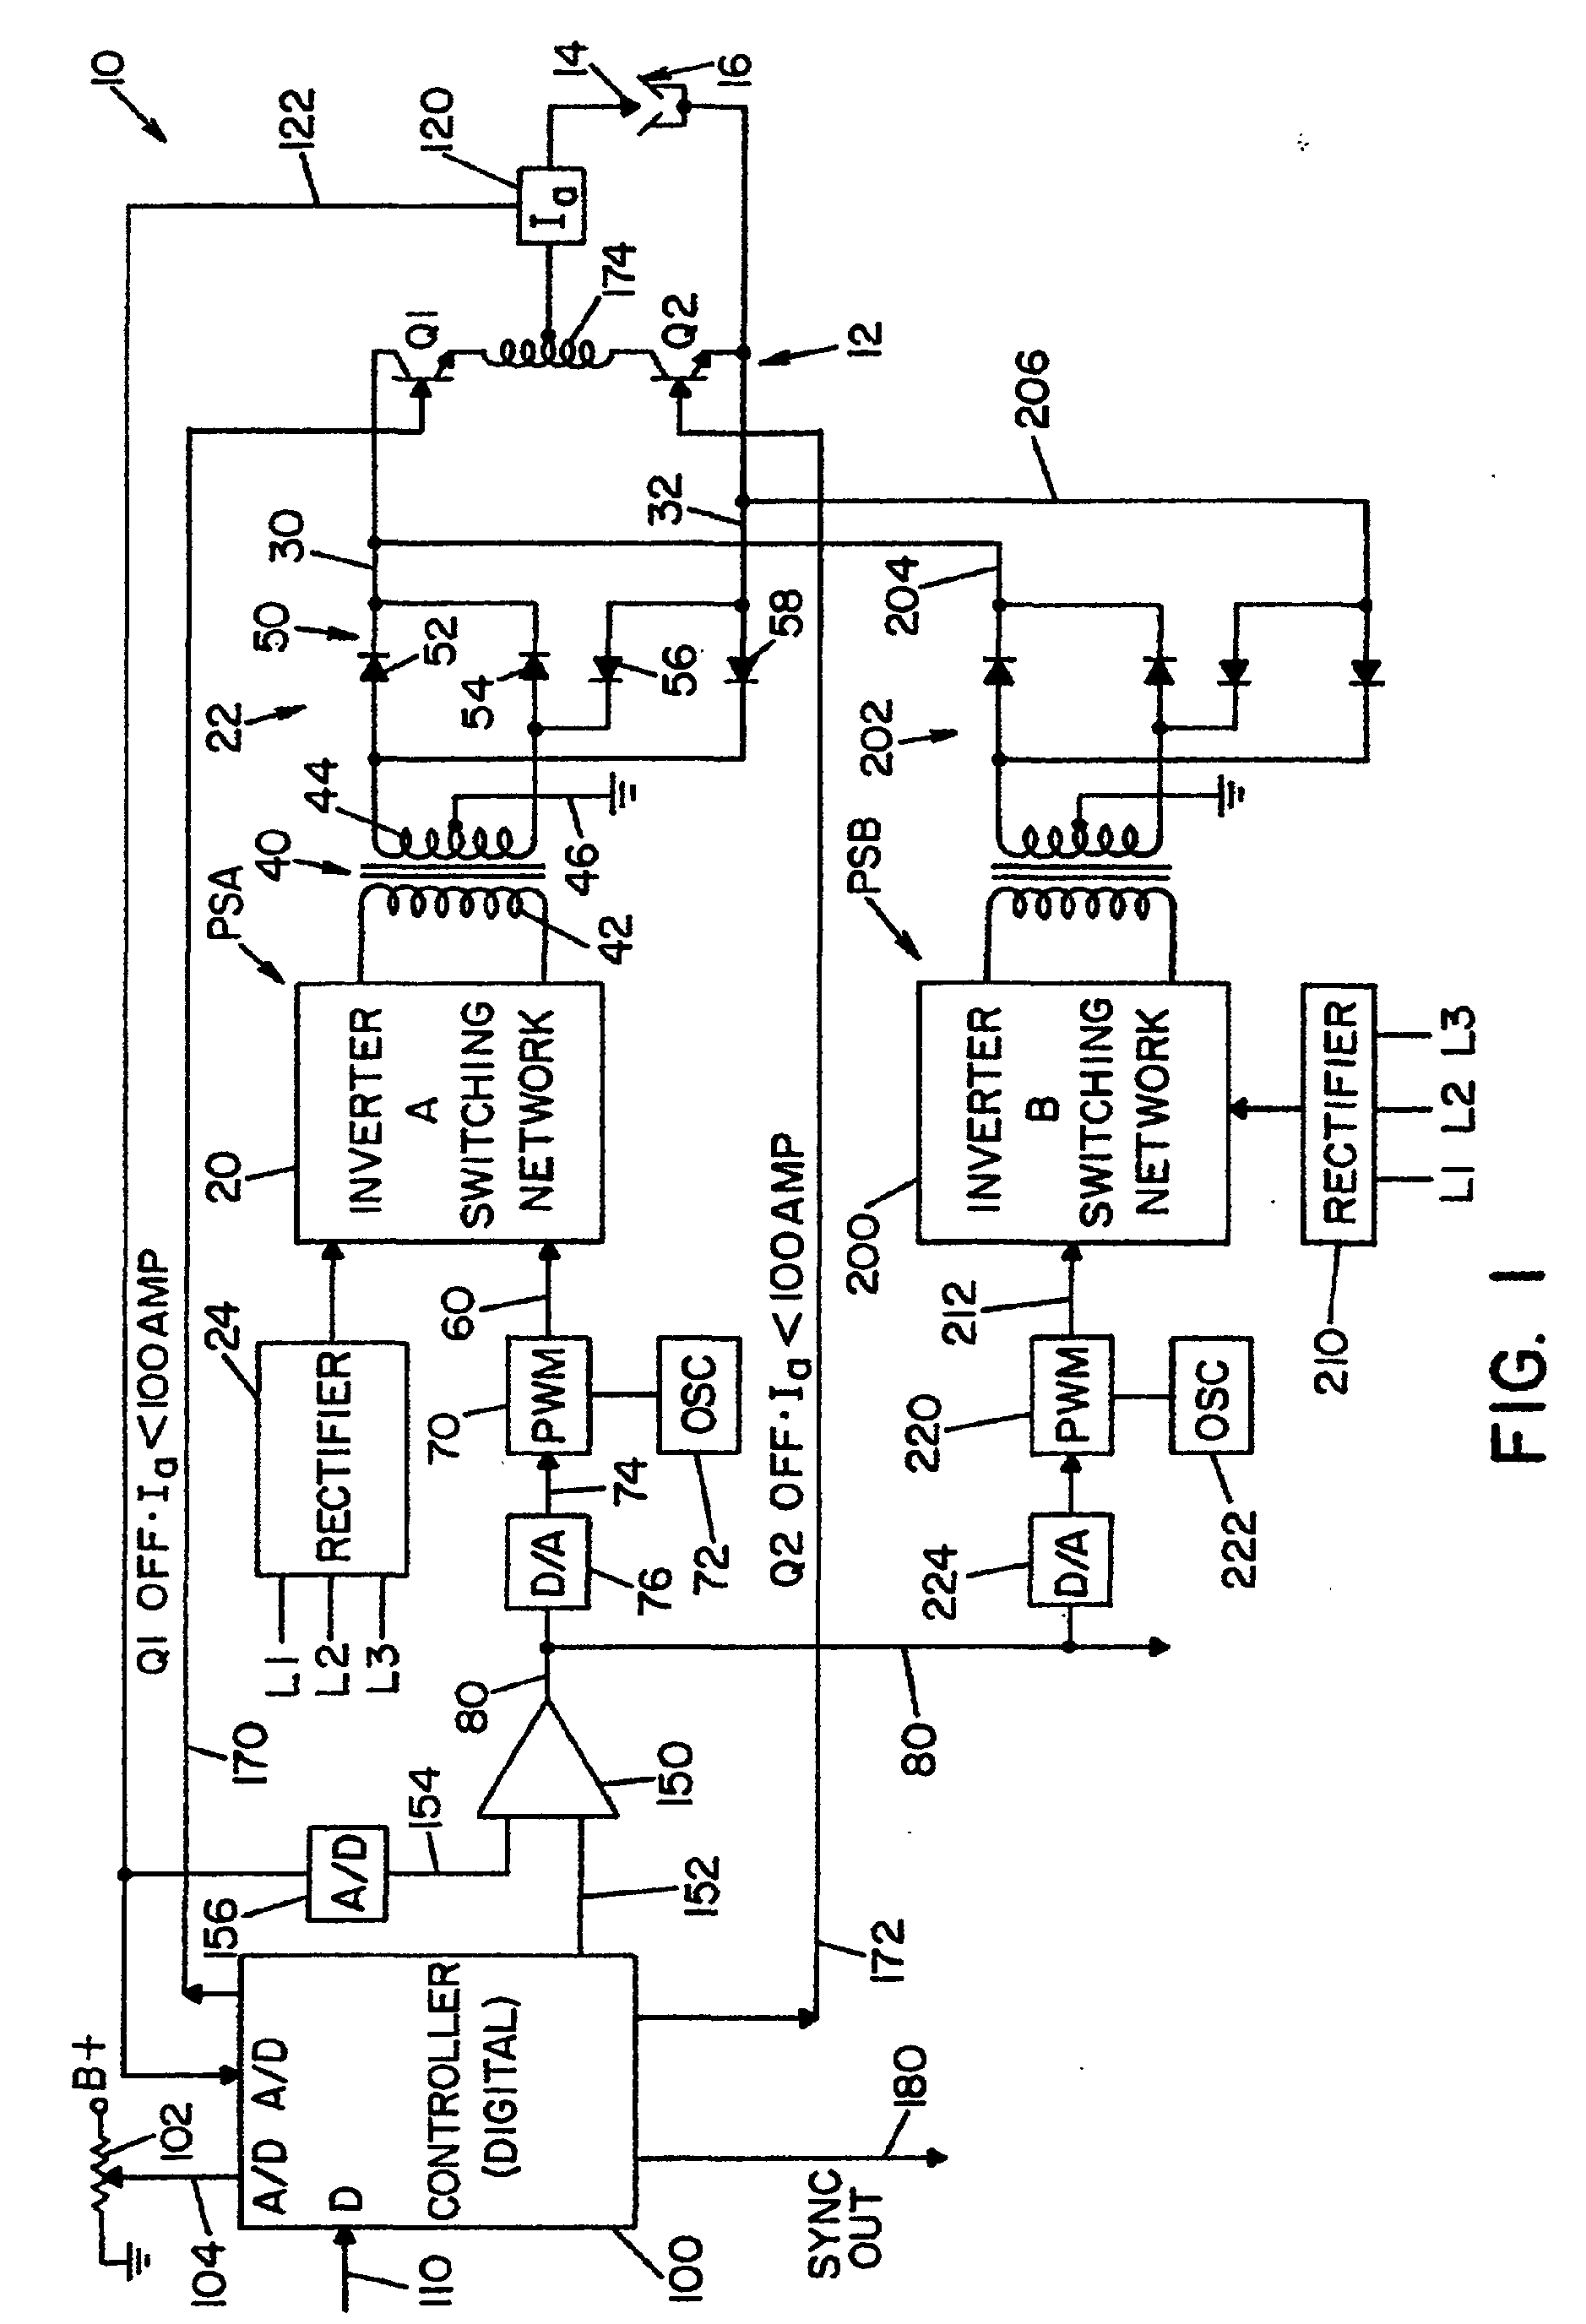 arc welder wiring diagram color just wiring data arc welder diagram arc  welder wiring diagram auto